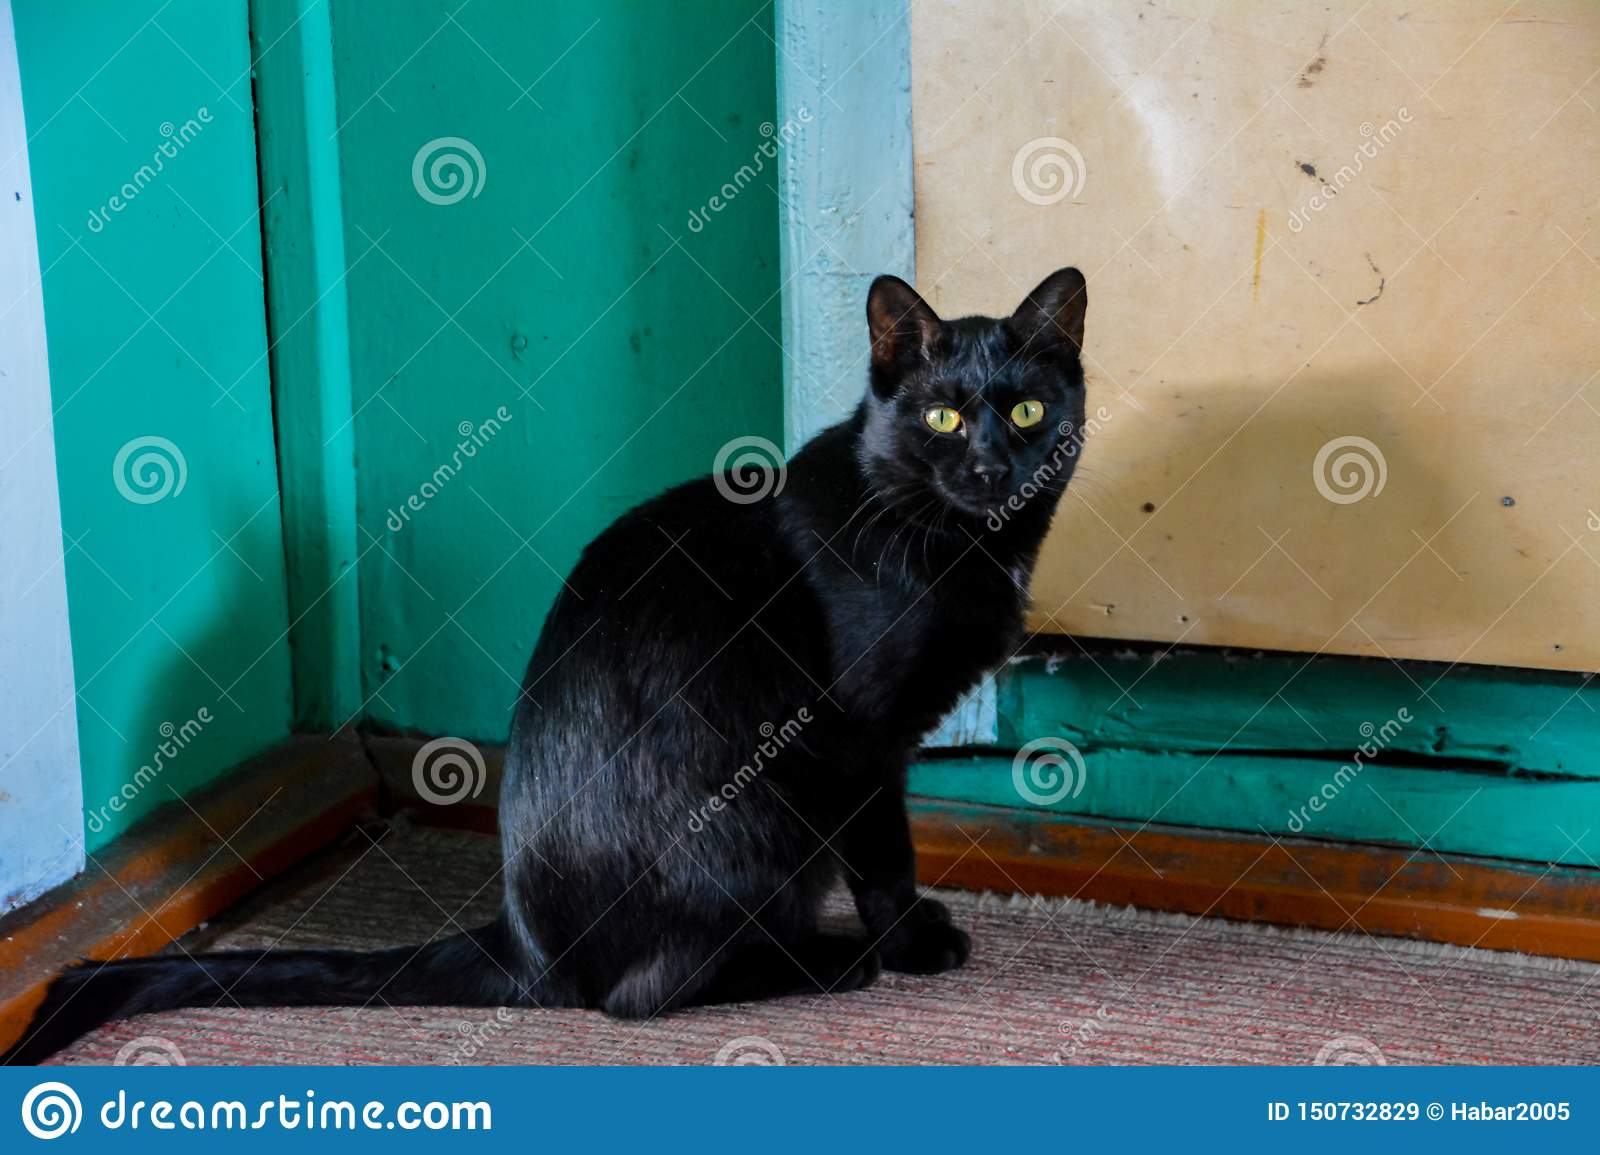 The black cat with yellow eyes.